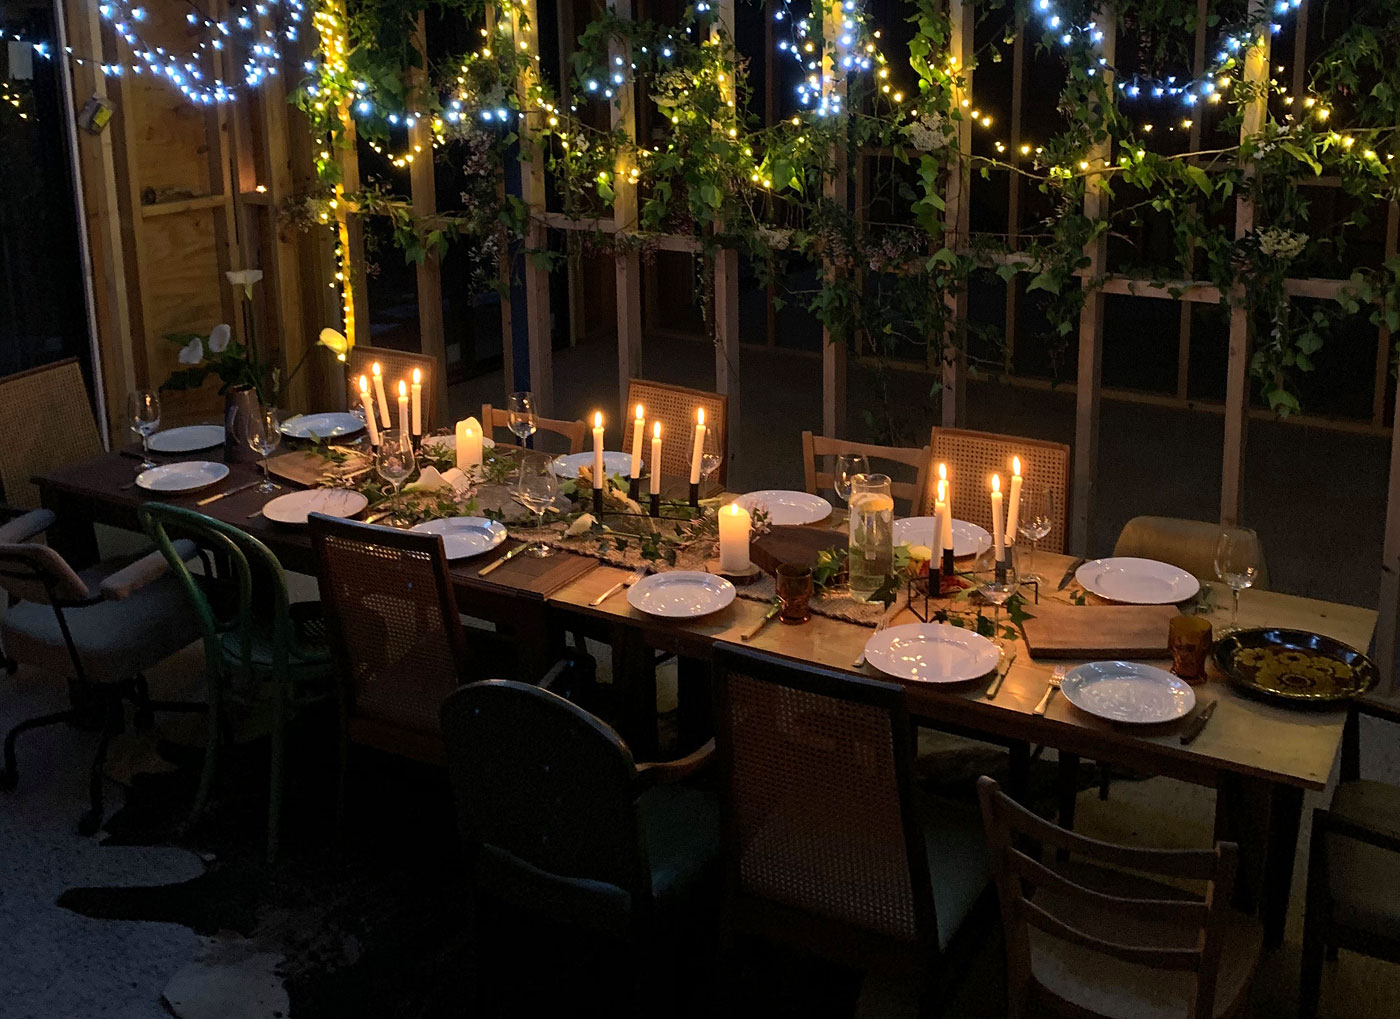 Renovation site dinner party